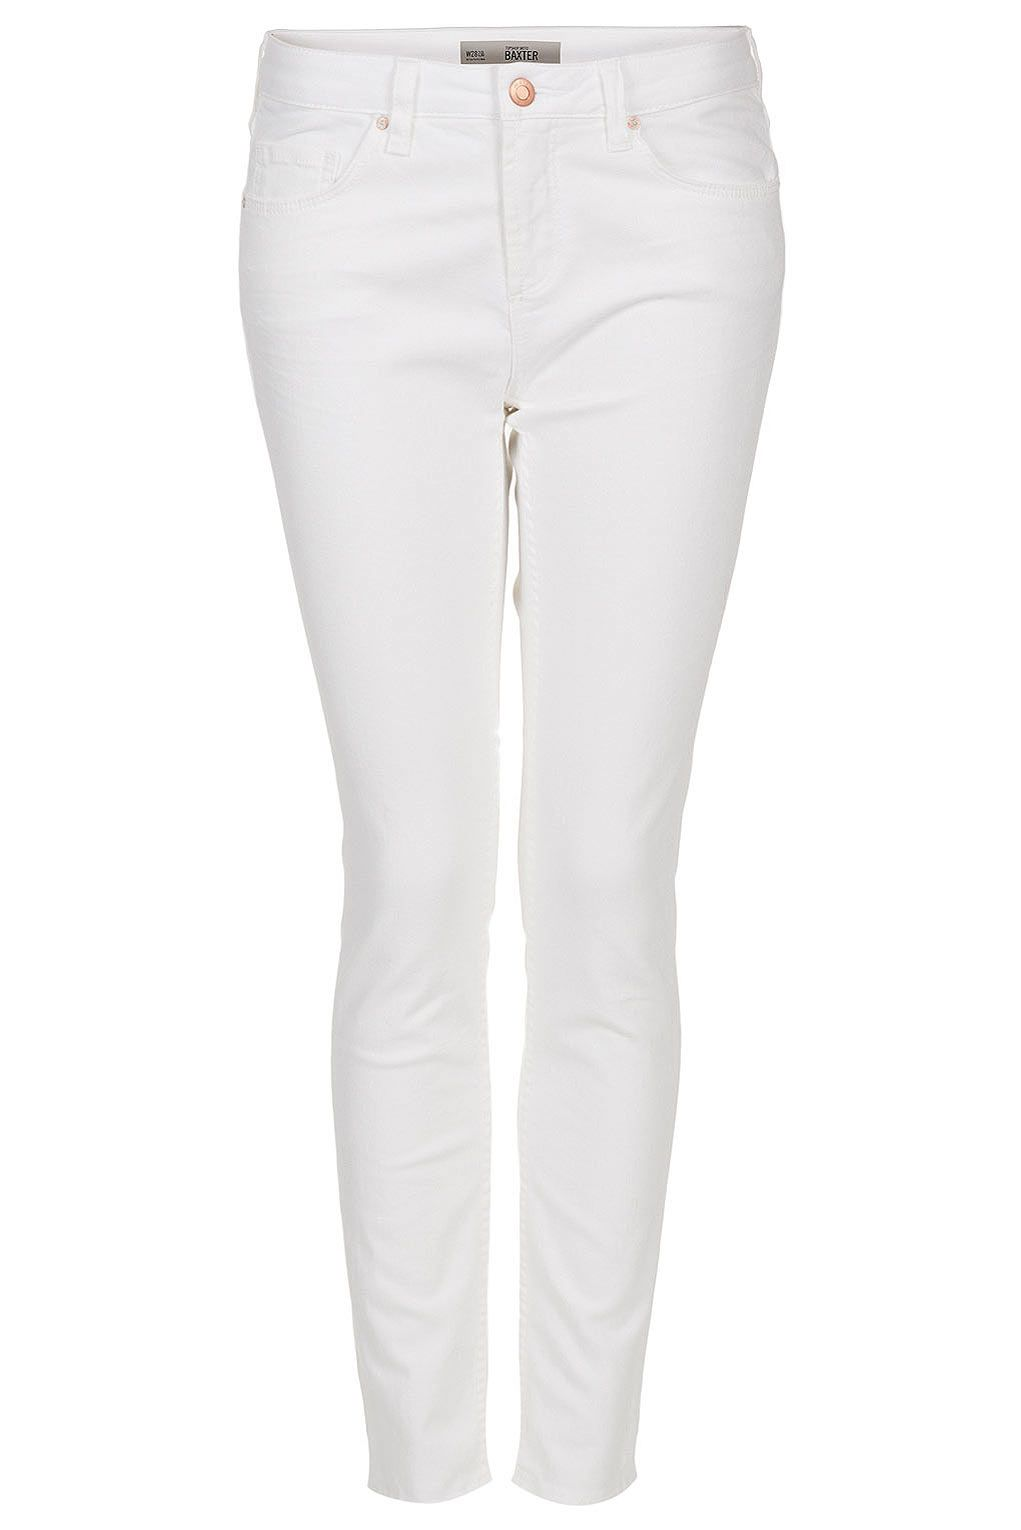 Images of White Jeans - Get Your Fashion Style